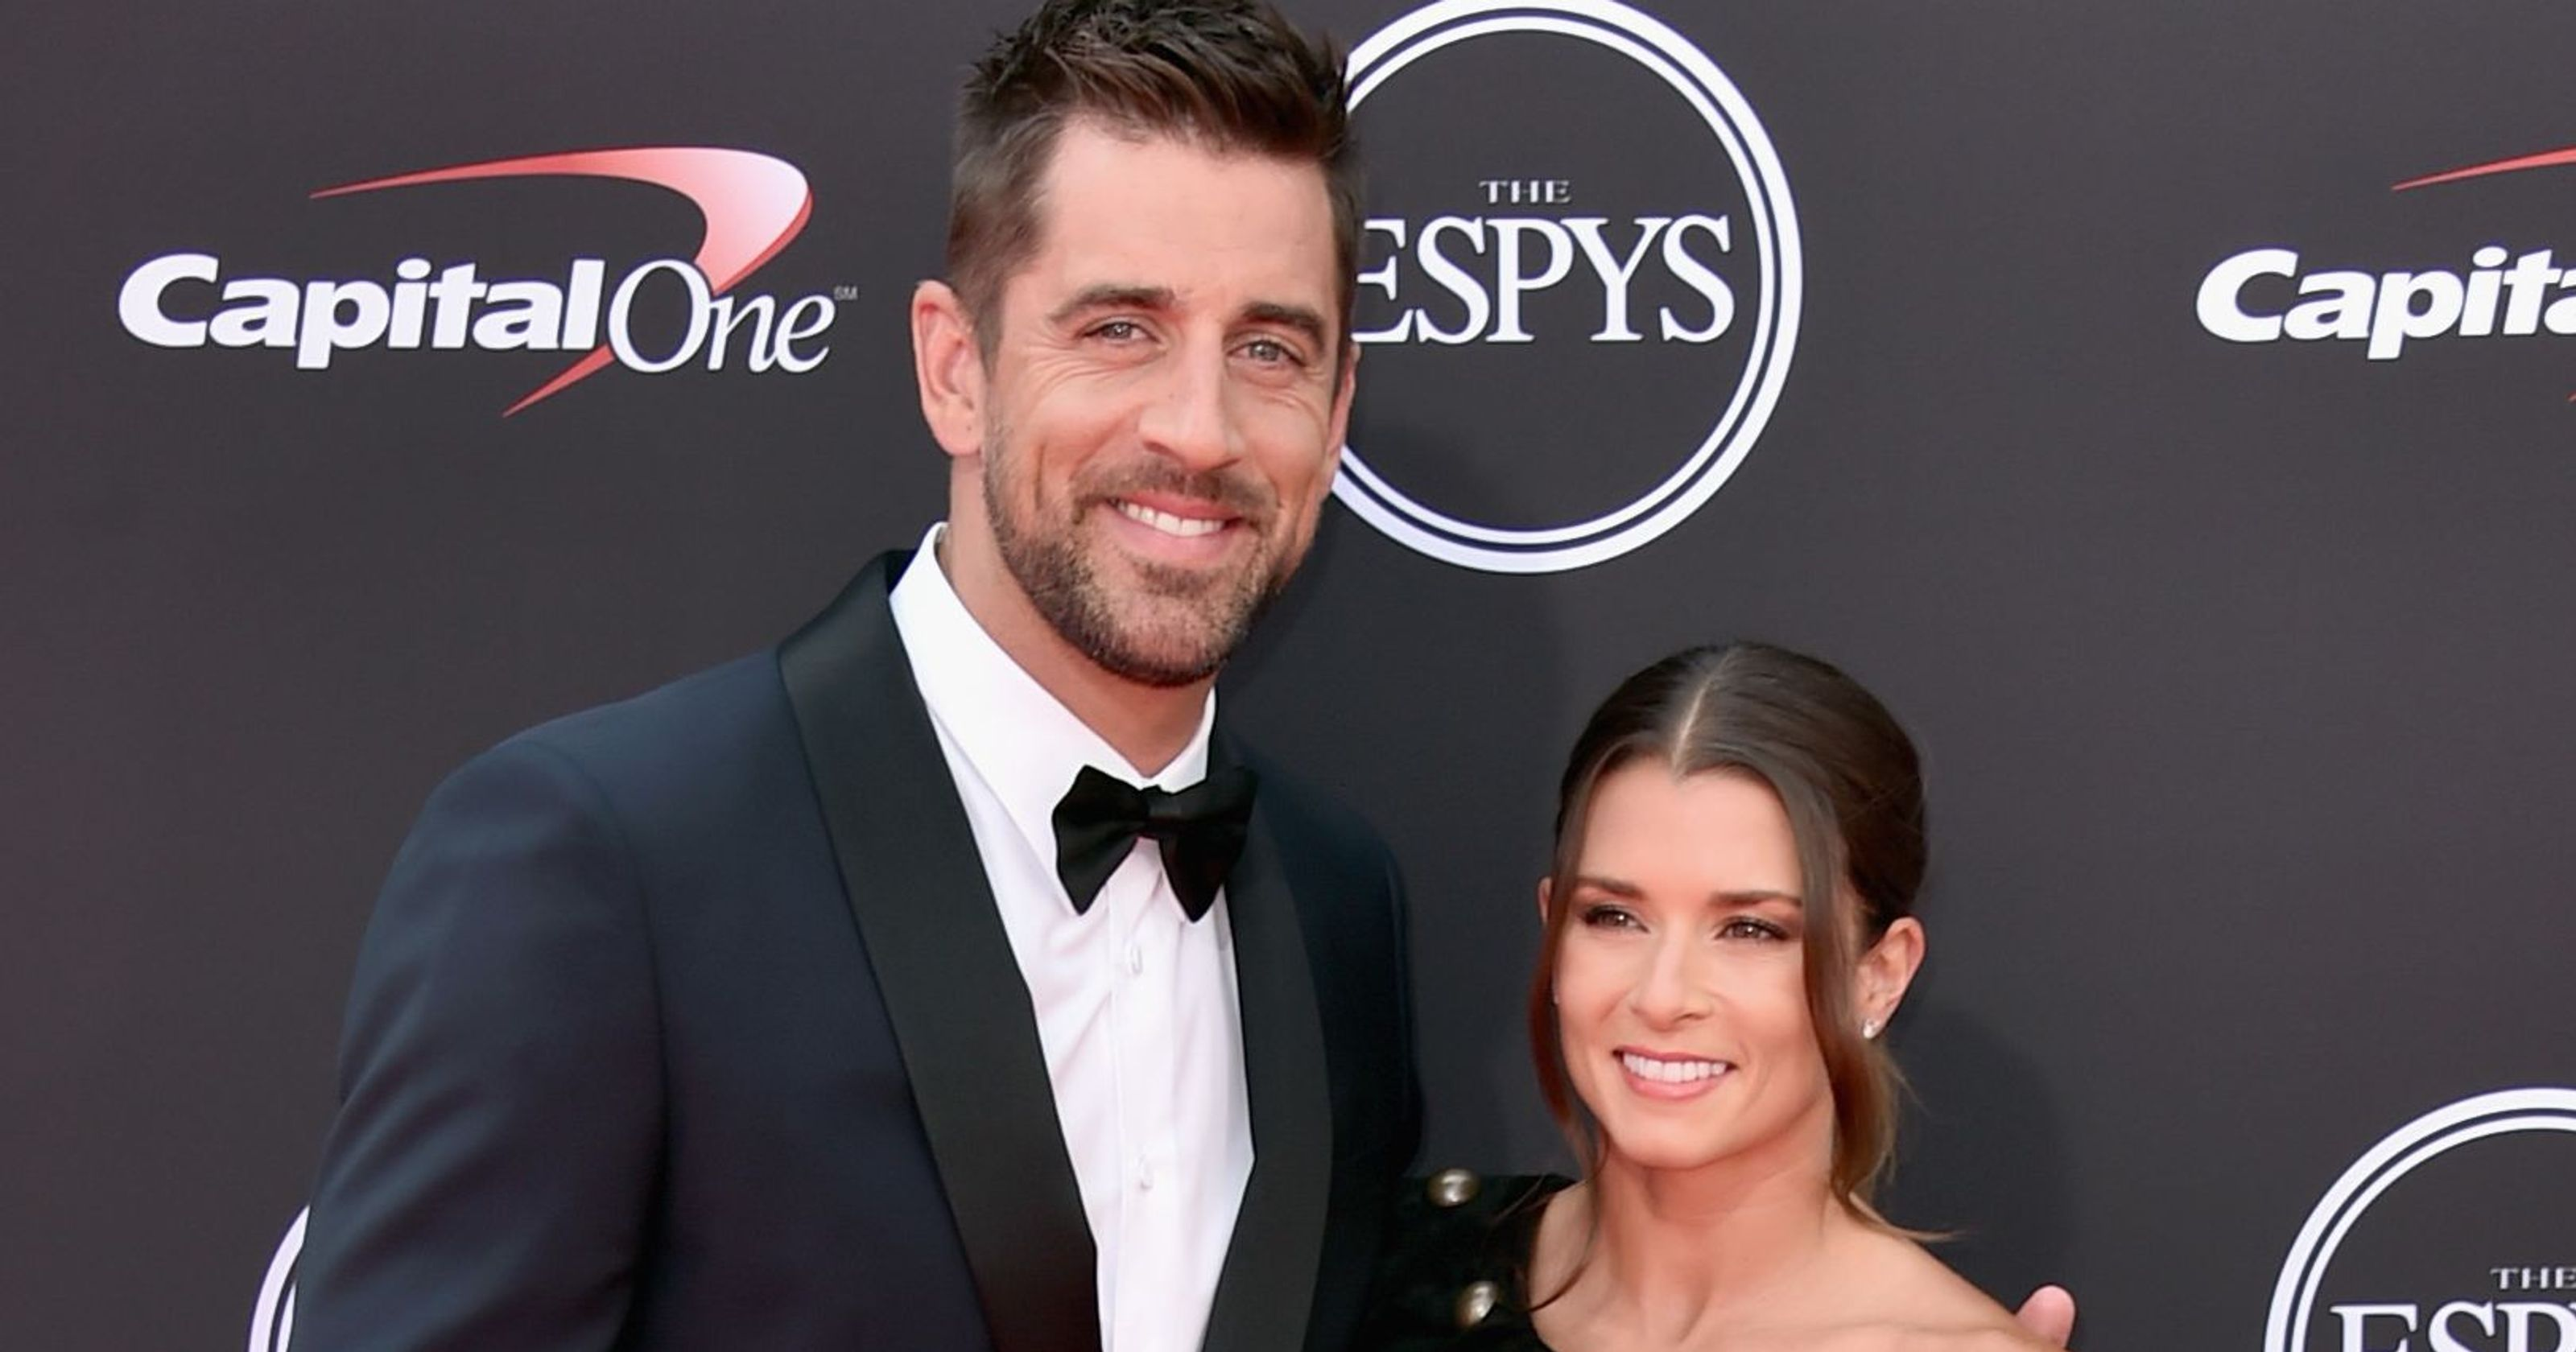 Danica Patrick Aaron Rodgers Aaron Rodgers Athlete Wife And Girlfriend